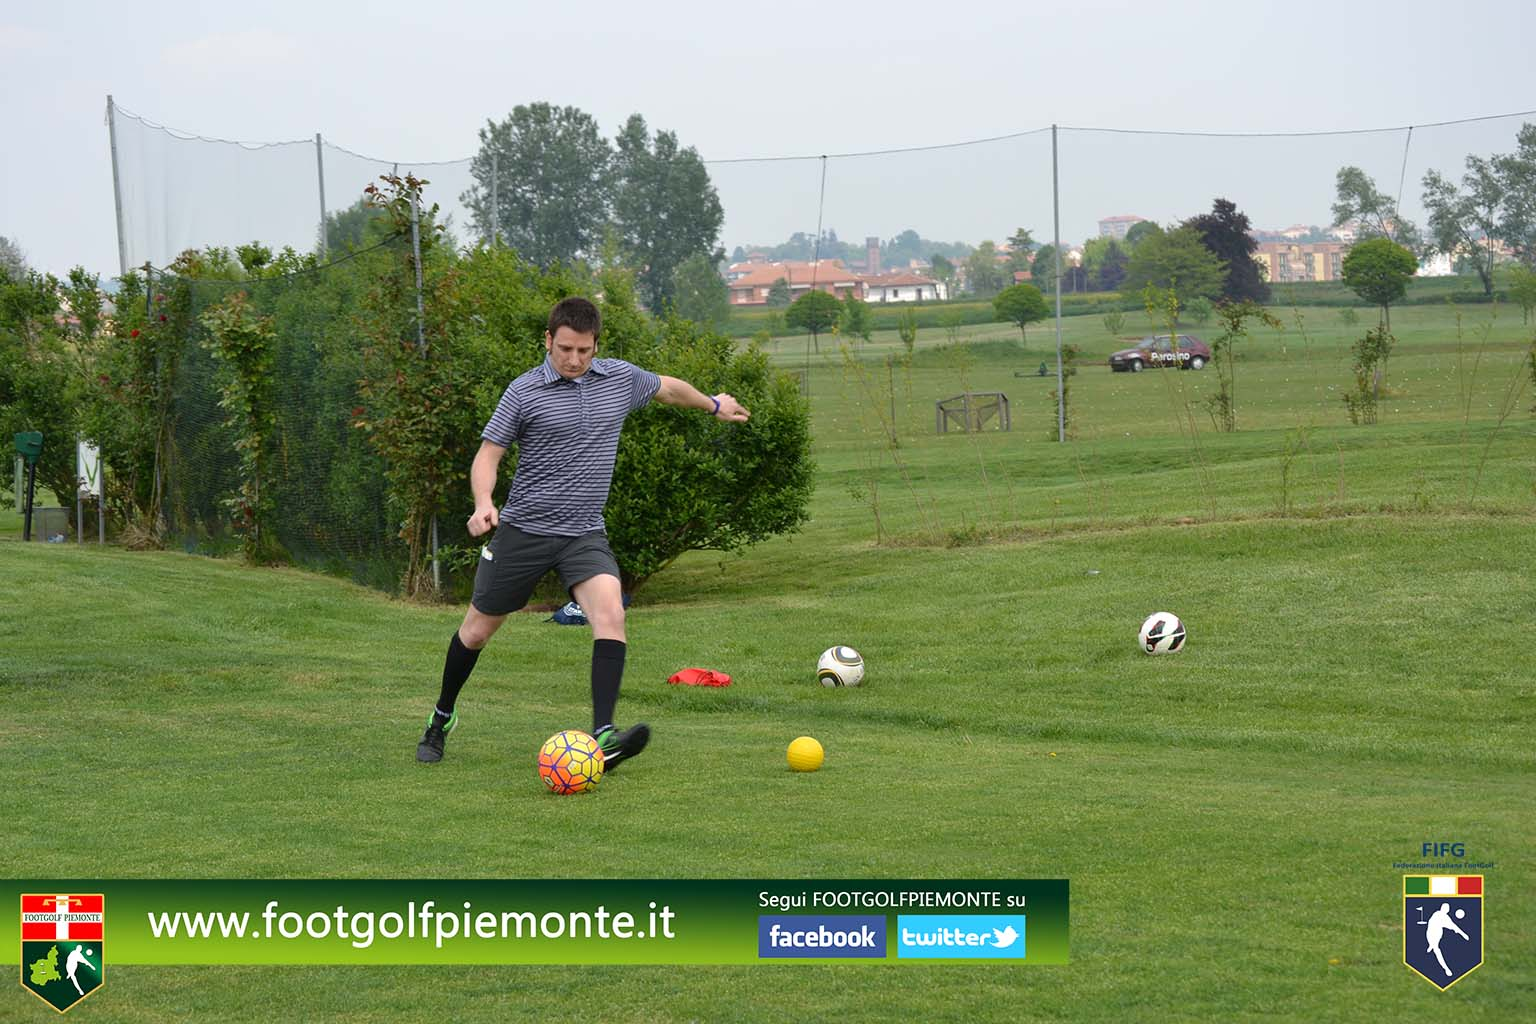 FOTO 9 Regions' Cup Footgolf Piemonte 2016 Golf Città di Asti (At) 30apr16-8